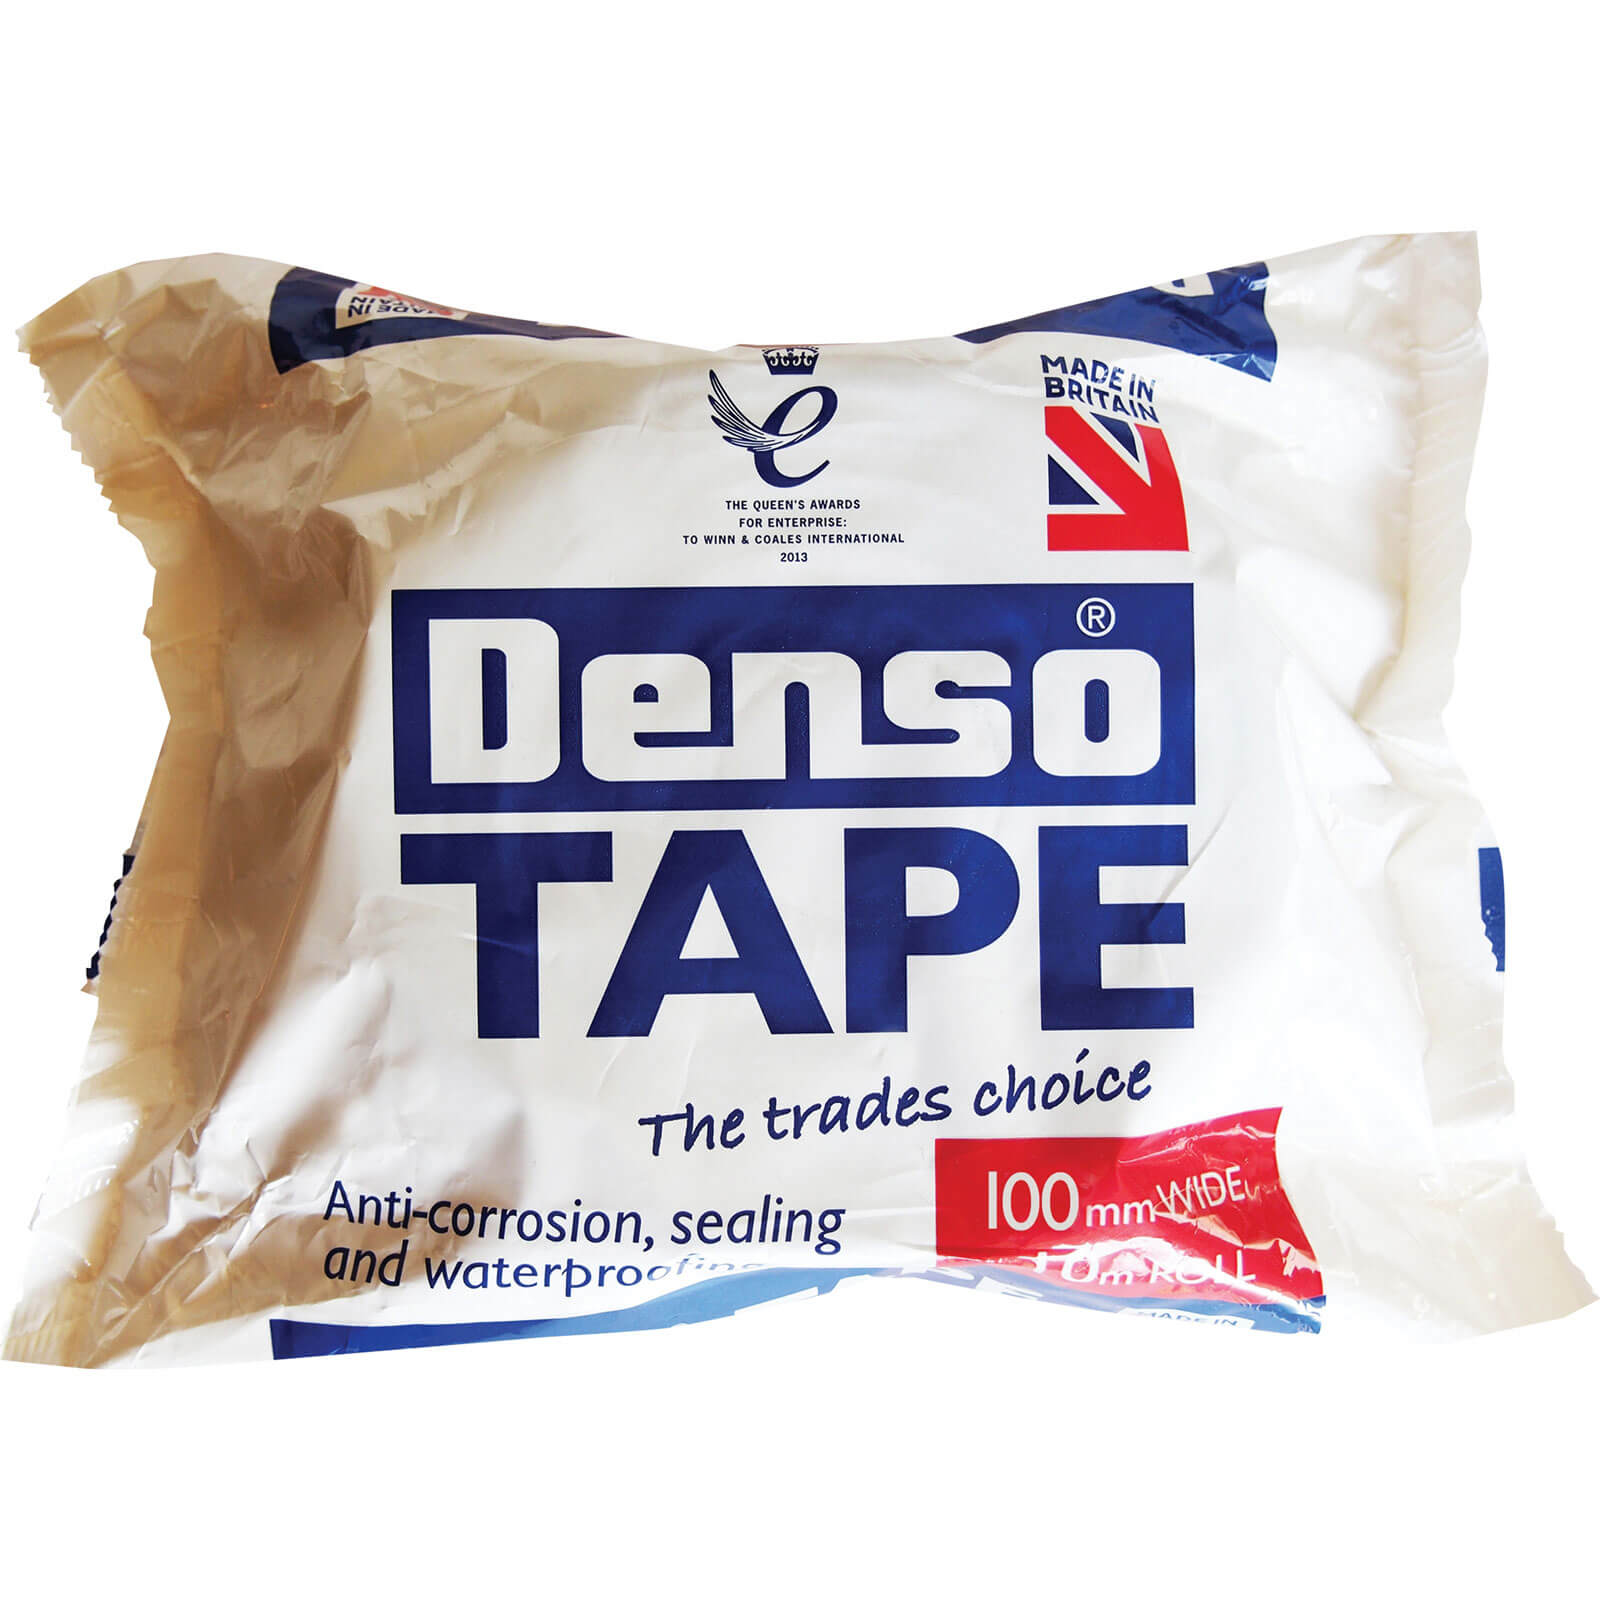 Denso Tape 100mm x 10m Rolls